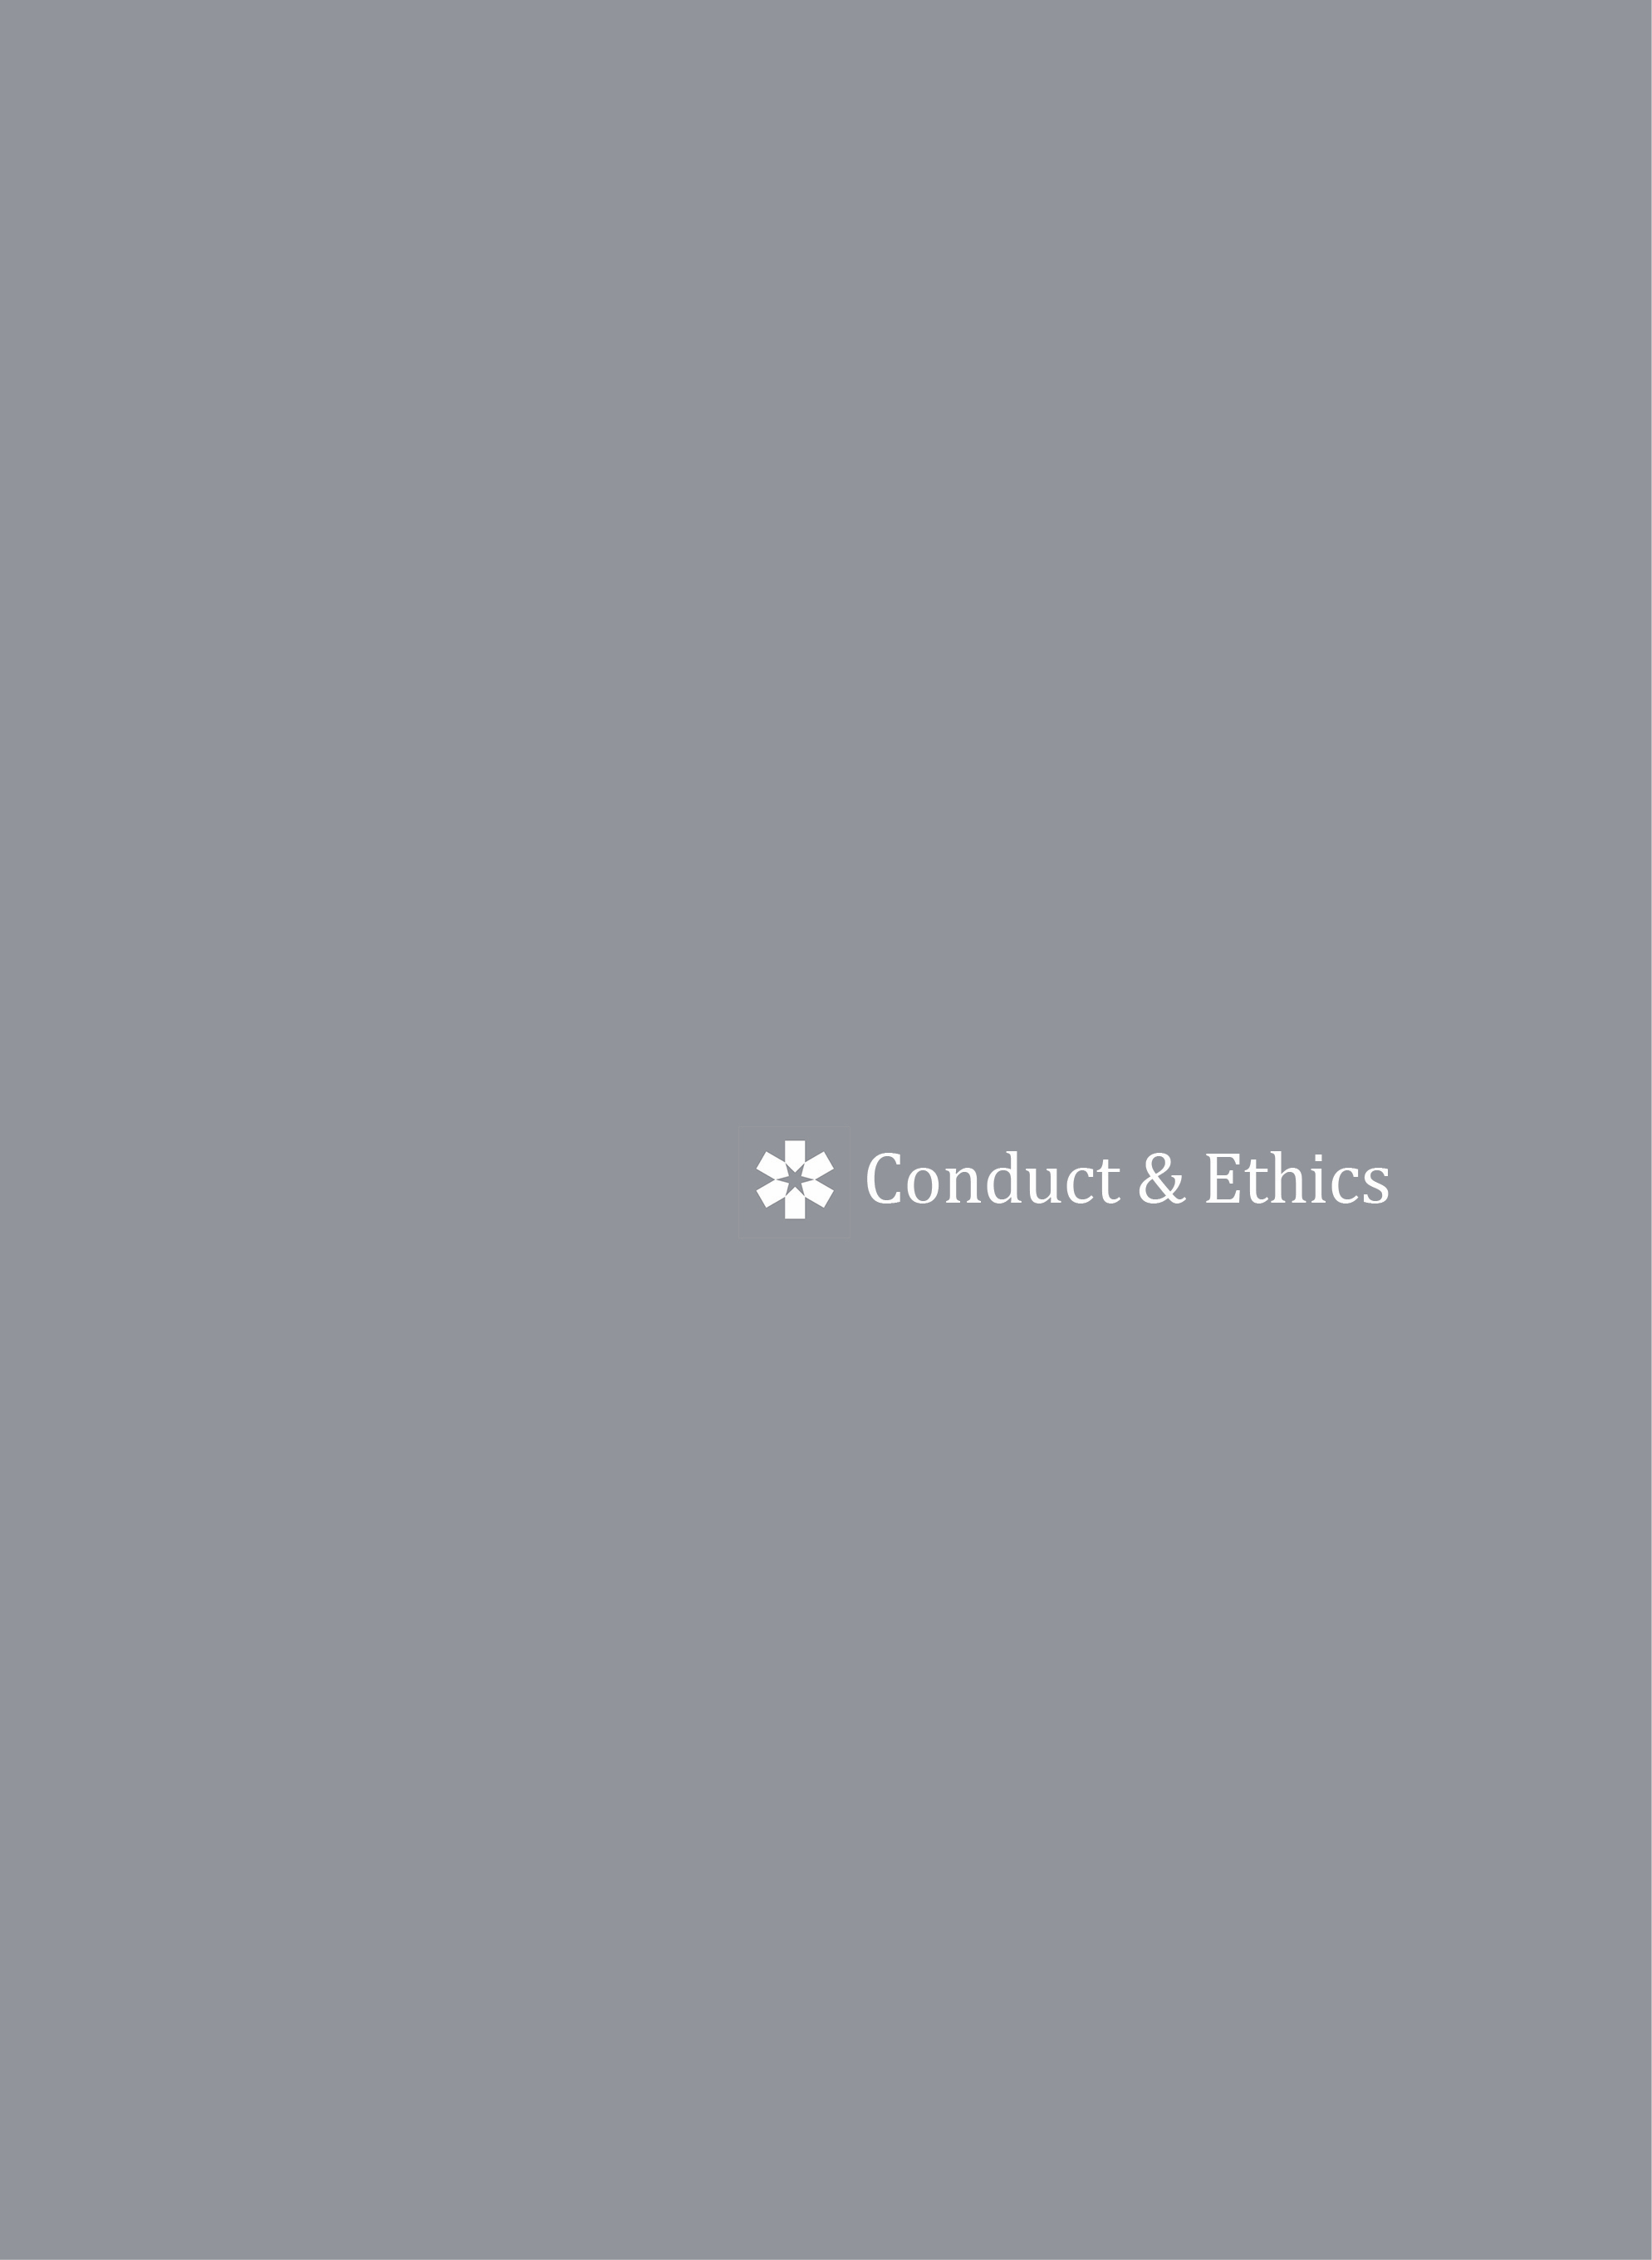 Conduct & Ethics Statement